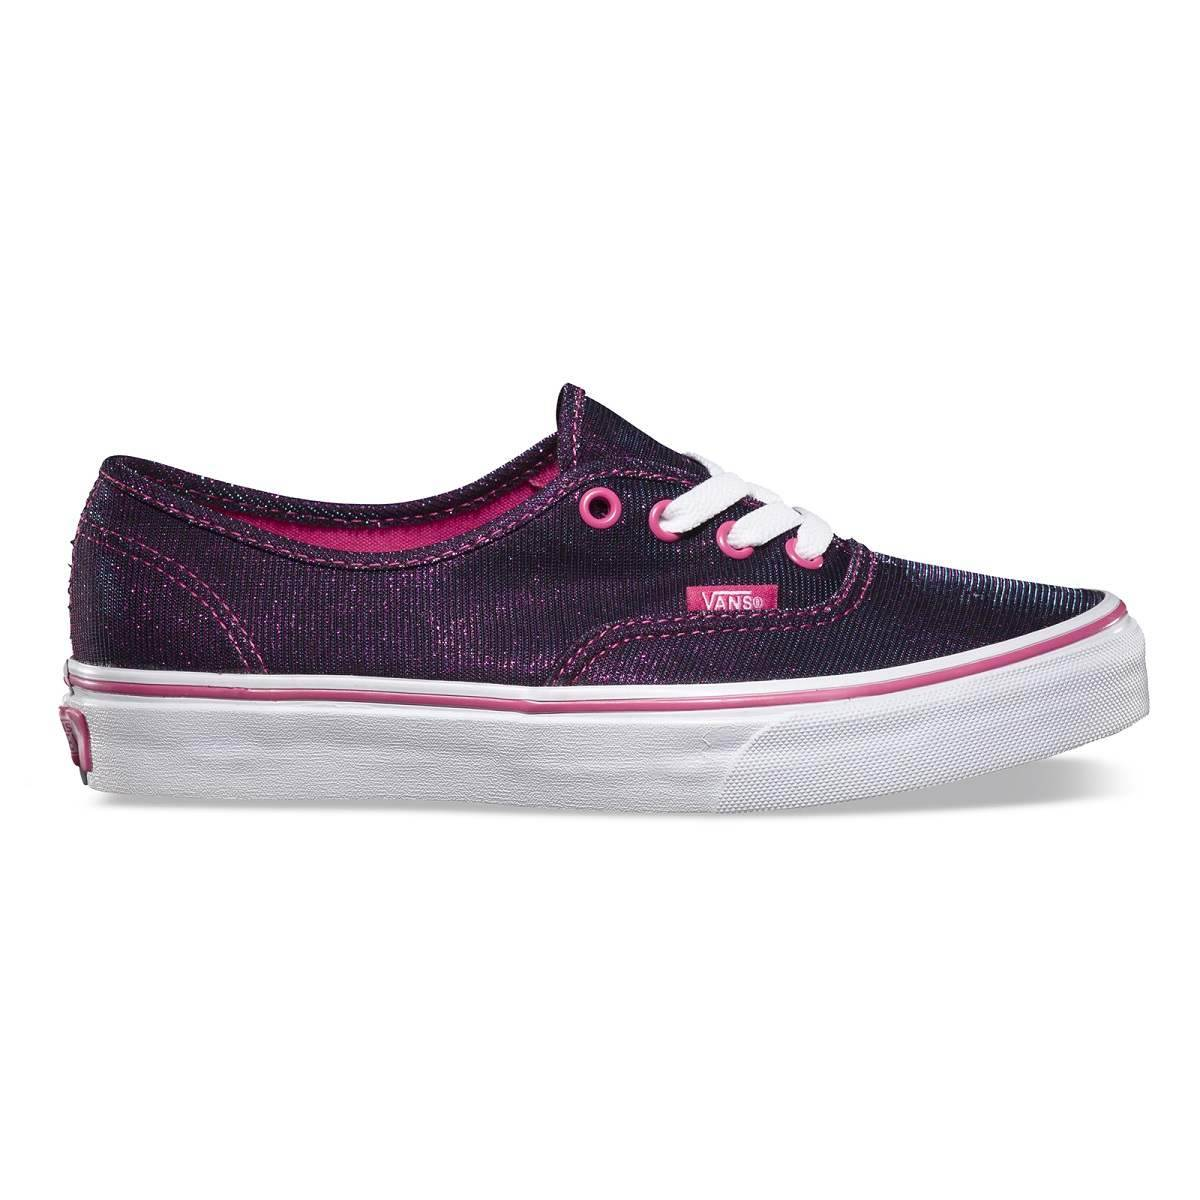 vans authentic schuhe turnschuhe sneaker damen diverse. Black Bedroom Furniture Sets. Home Design Ideas